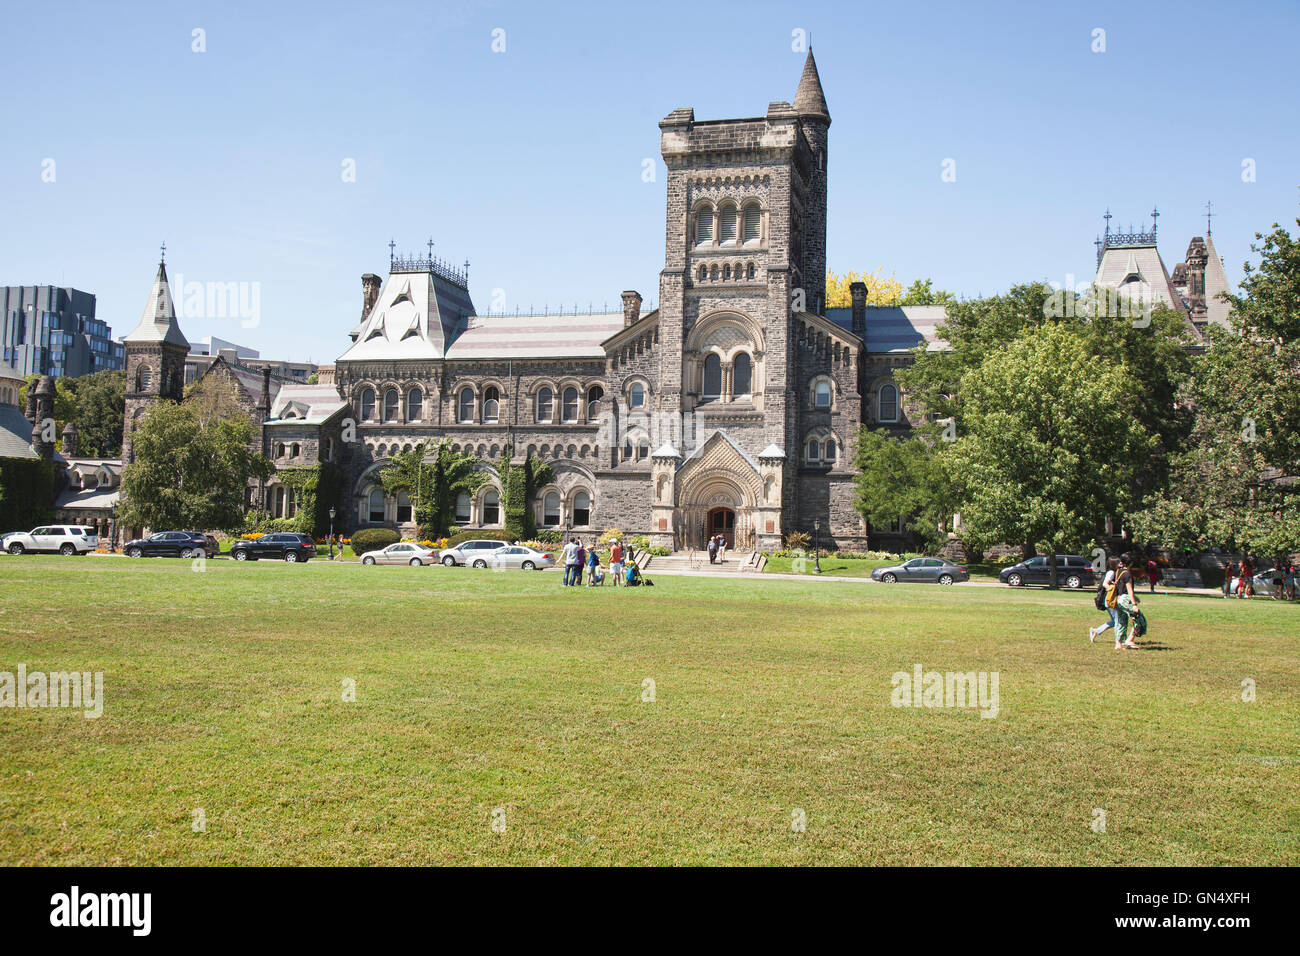 TORONTO - AUGUST 8, 2016: The University of Toronto is a public research university in Toronto, Ontario, Canada, Stock Photo